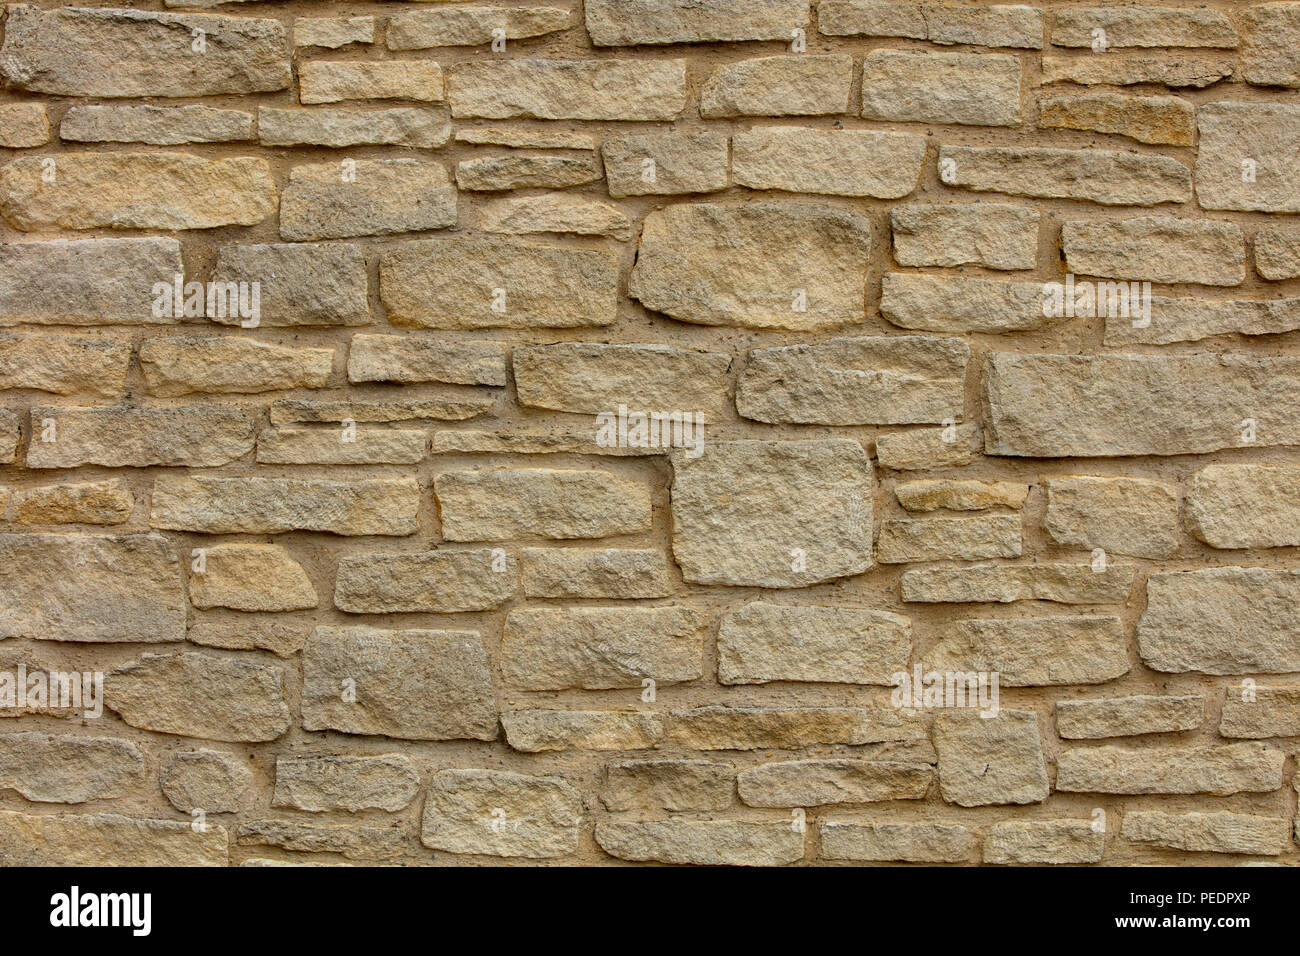 Load bearing wall with horizontal pattern using thin, long thin and square stone, old town of Norwich, UK - Stock Image